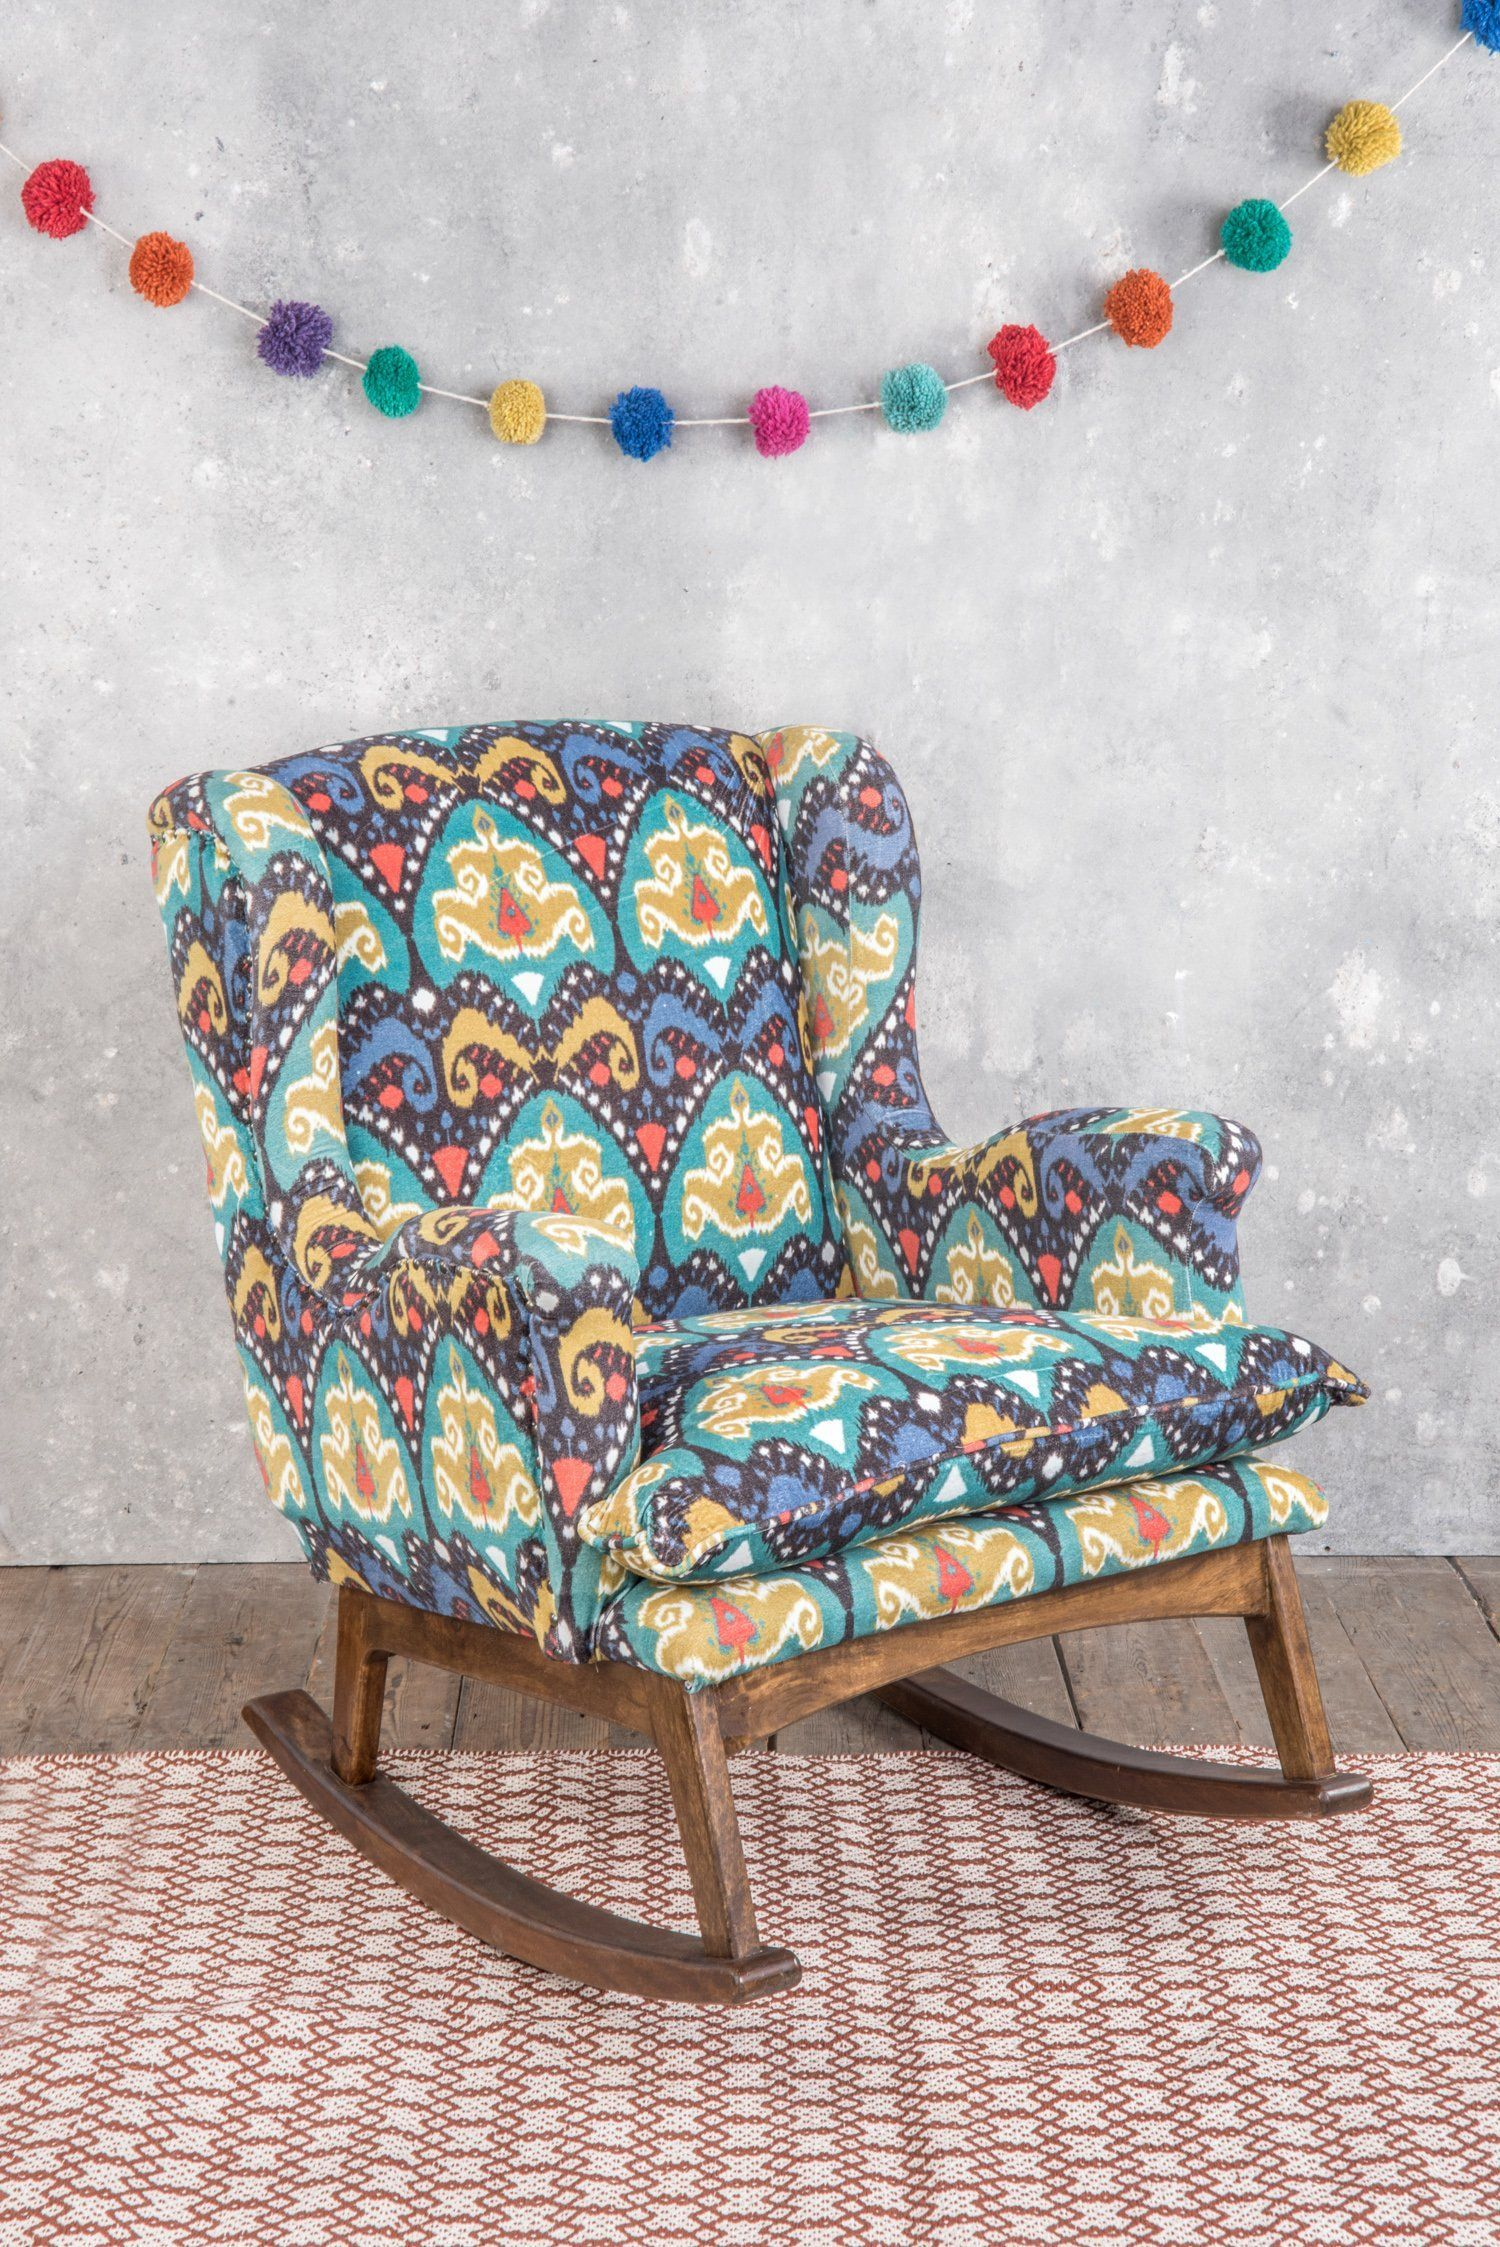 Patterned Velvet Rocking Chair Rockingchair Rocking Chair